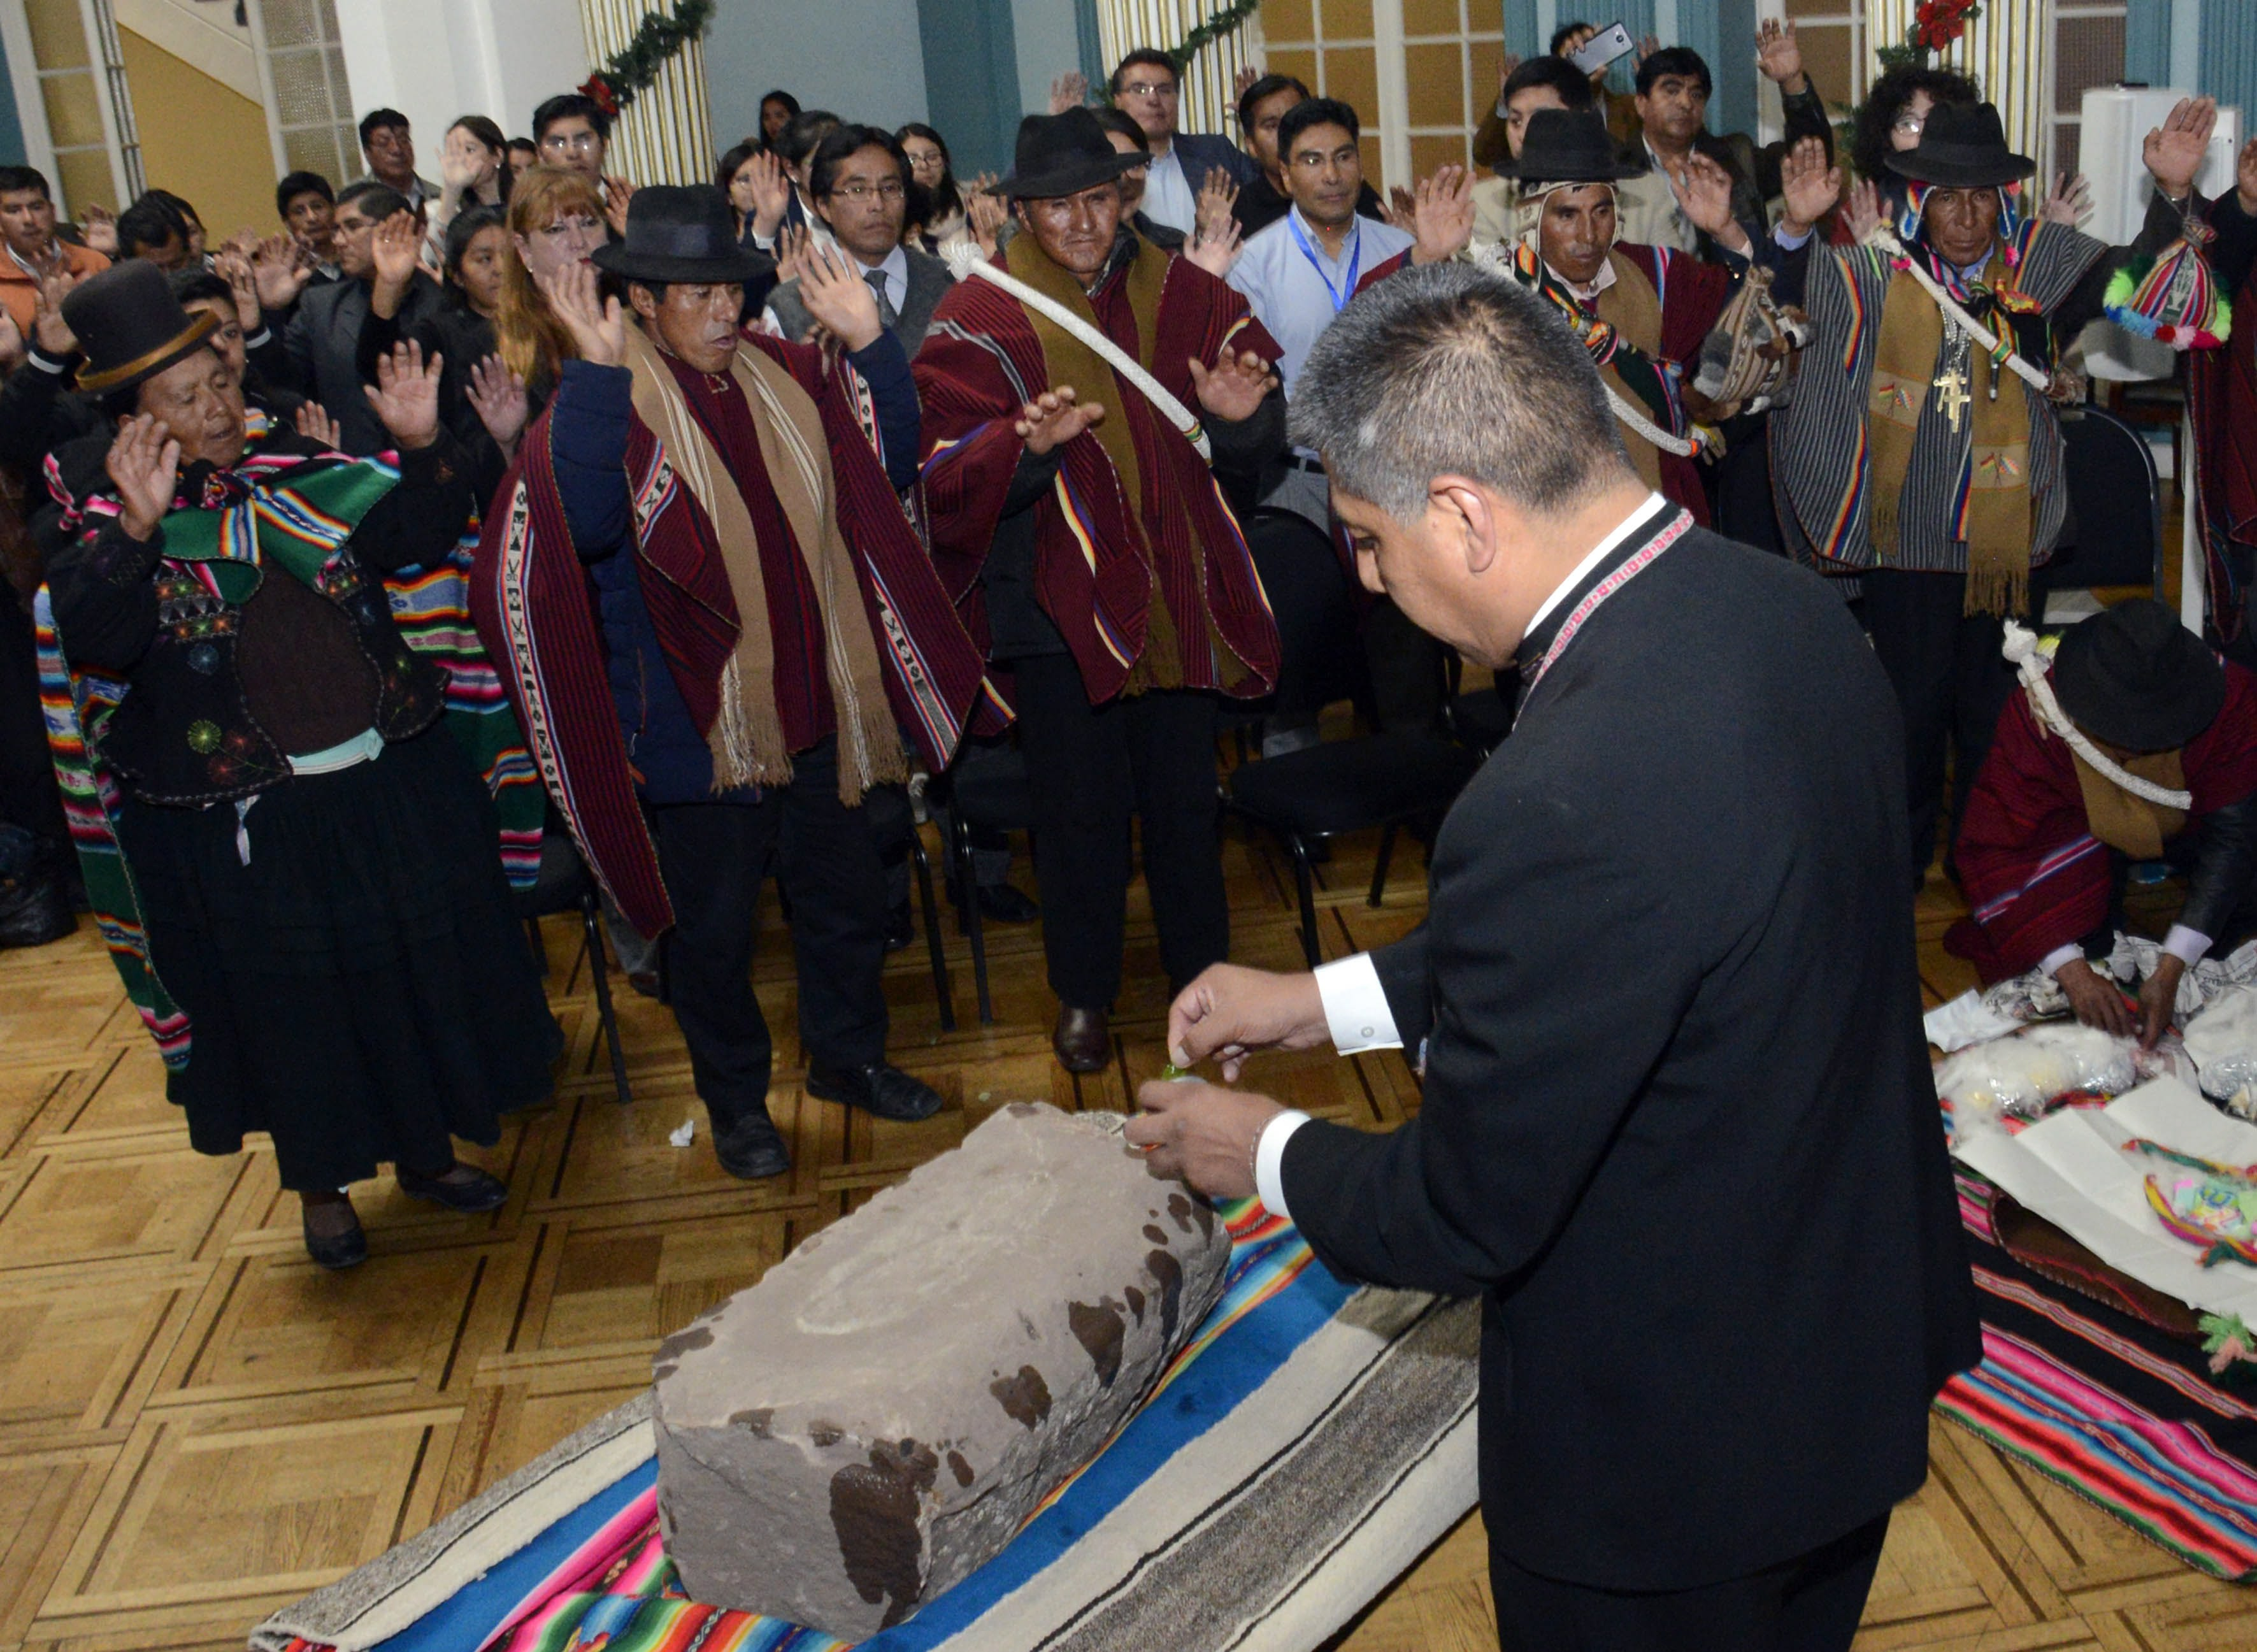 Photo made available by the Bolivian Information Agency (ABI) shows Bolivian Foreign Minister, Fernando Huanacuni (R), participating in the delivery of the world's oldest human footprint set in stone to the Bolivian Sullkatiti community in La Paz, Bolivia, Dec. 29, 2017.